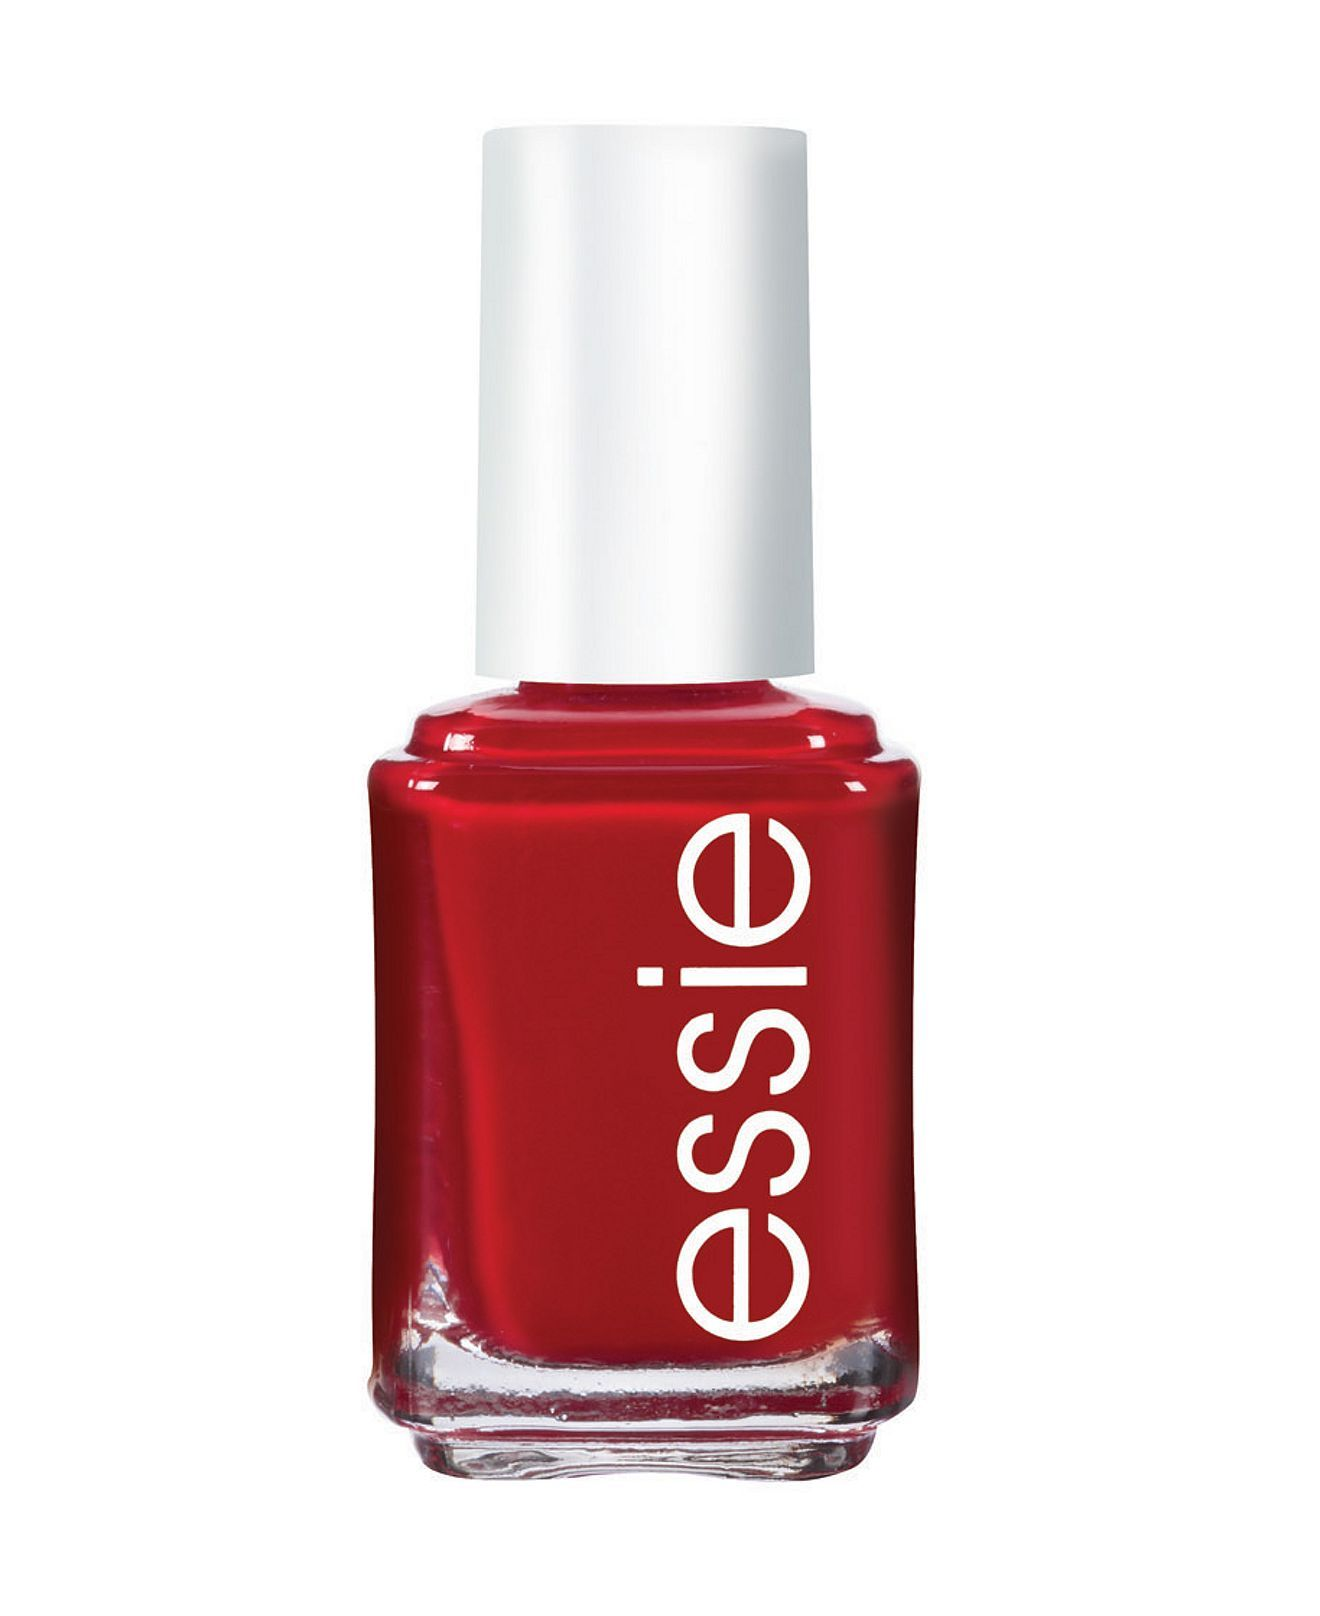 Essie nail color, a list | Essie nail colors, Beauty junkie and Nail ...